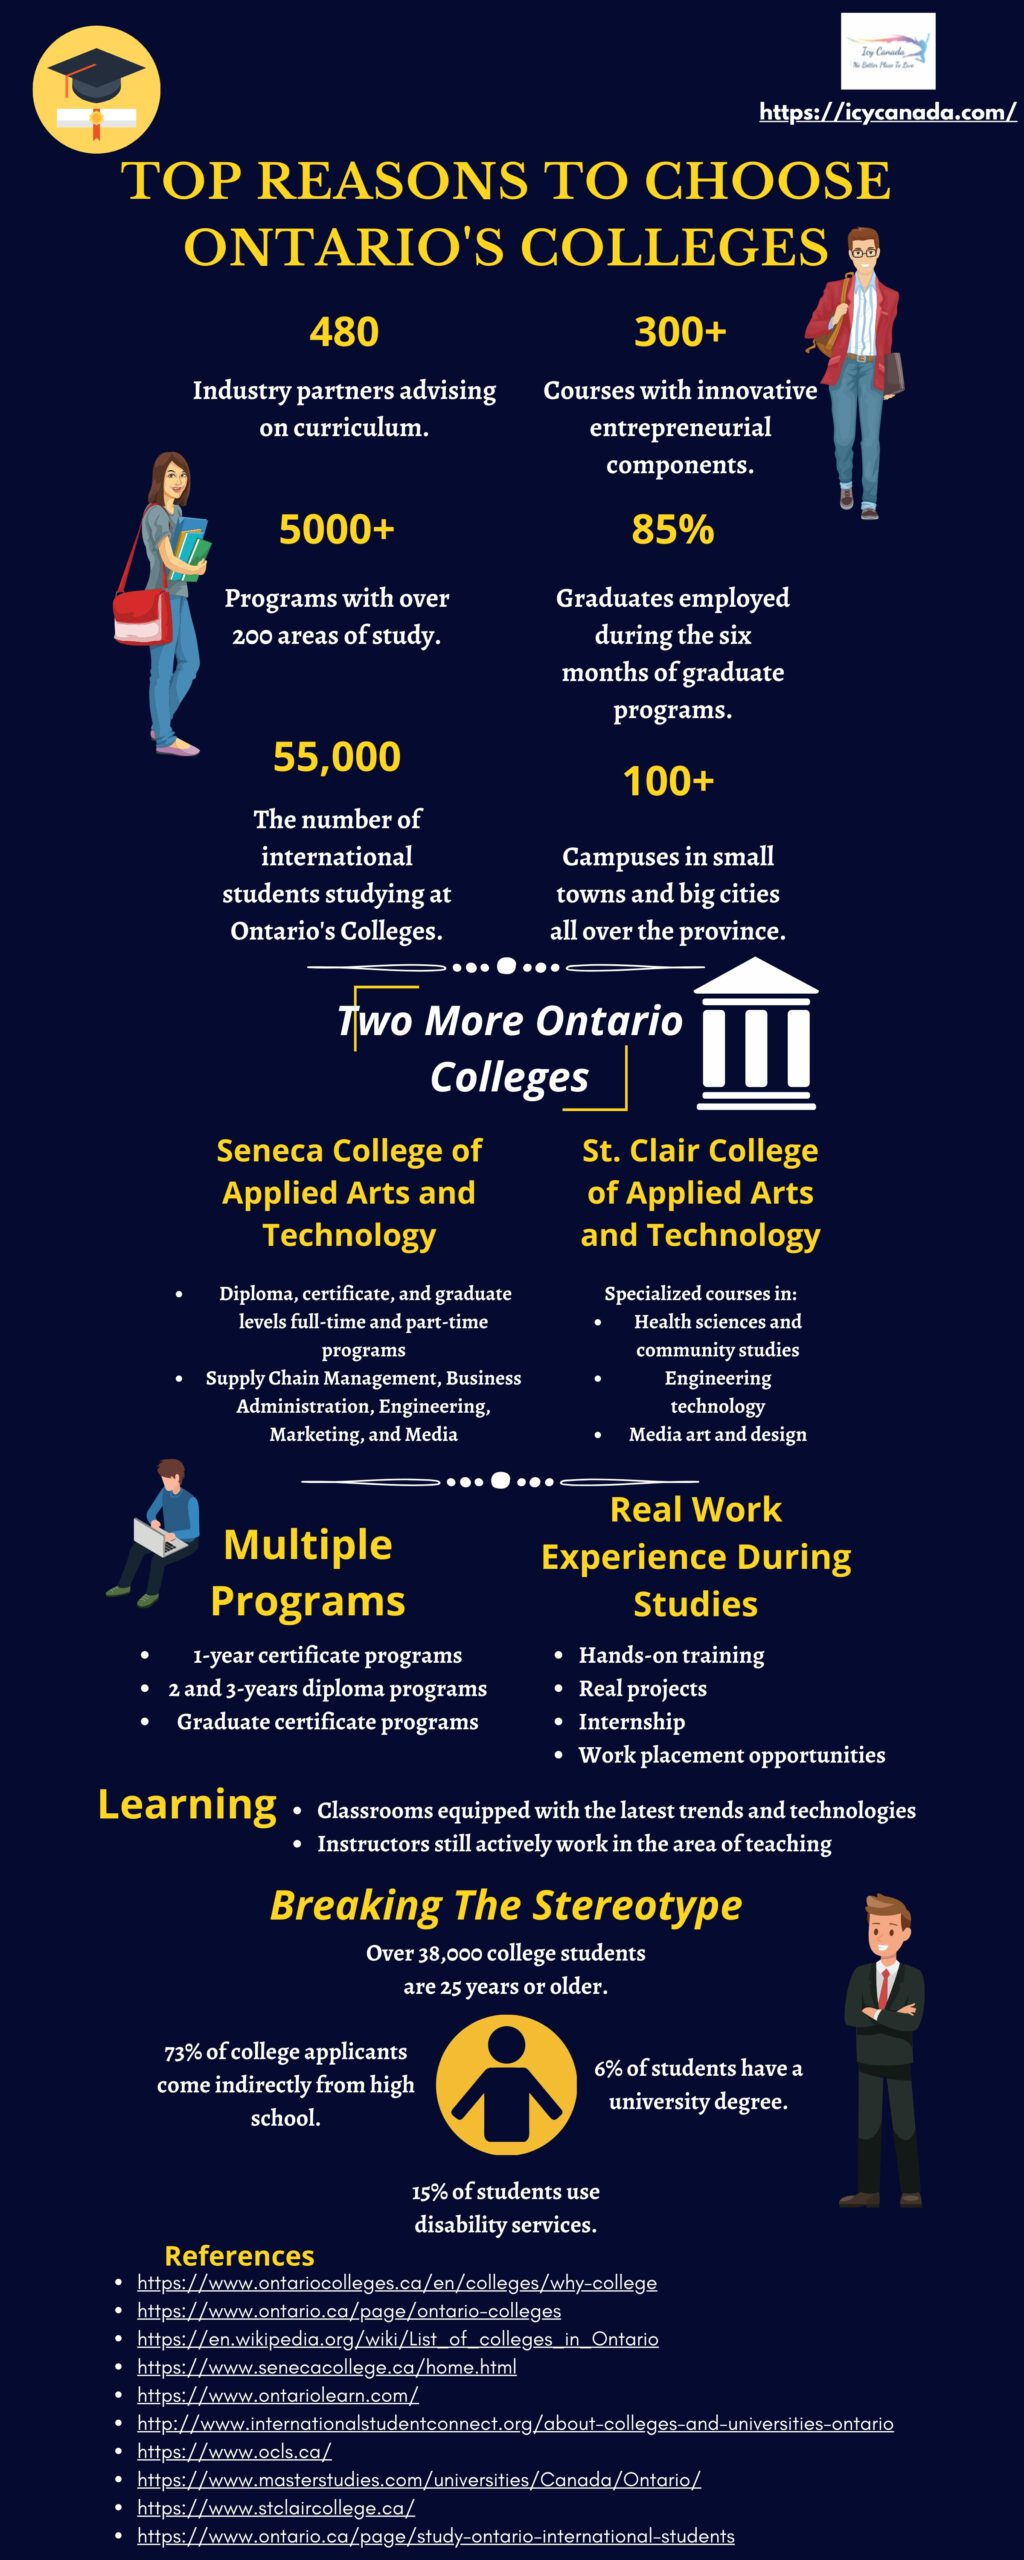 Why Ontario Colleges Are The Best?